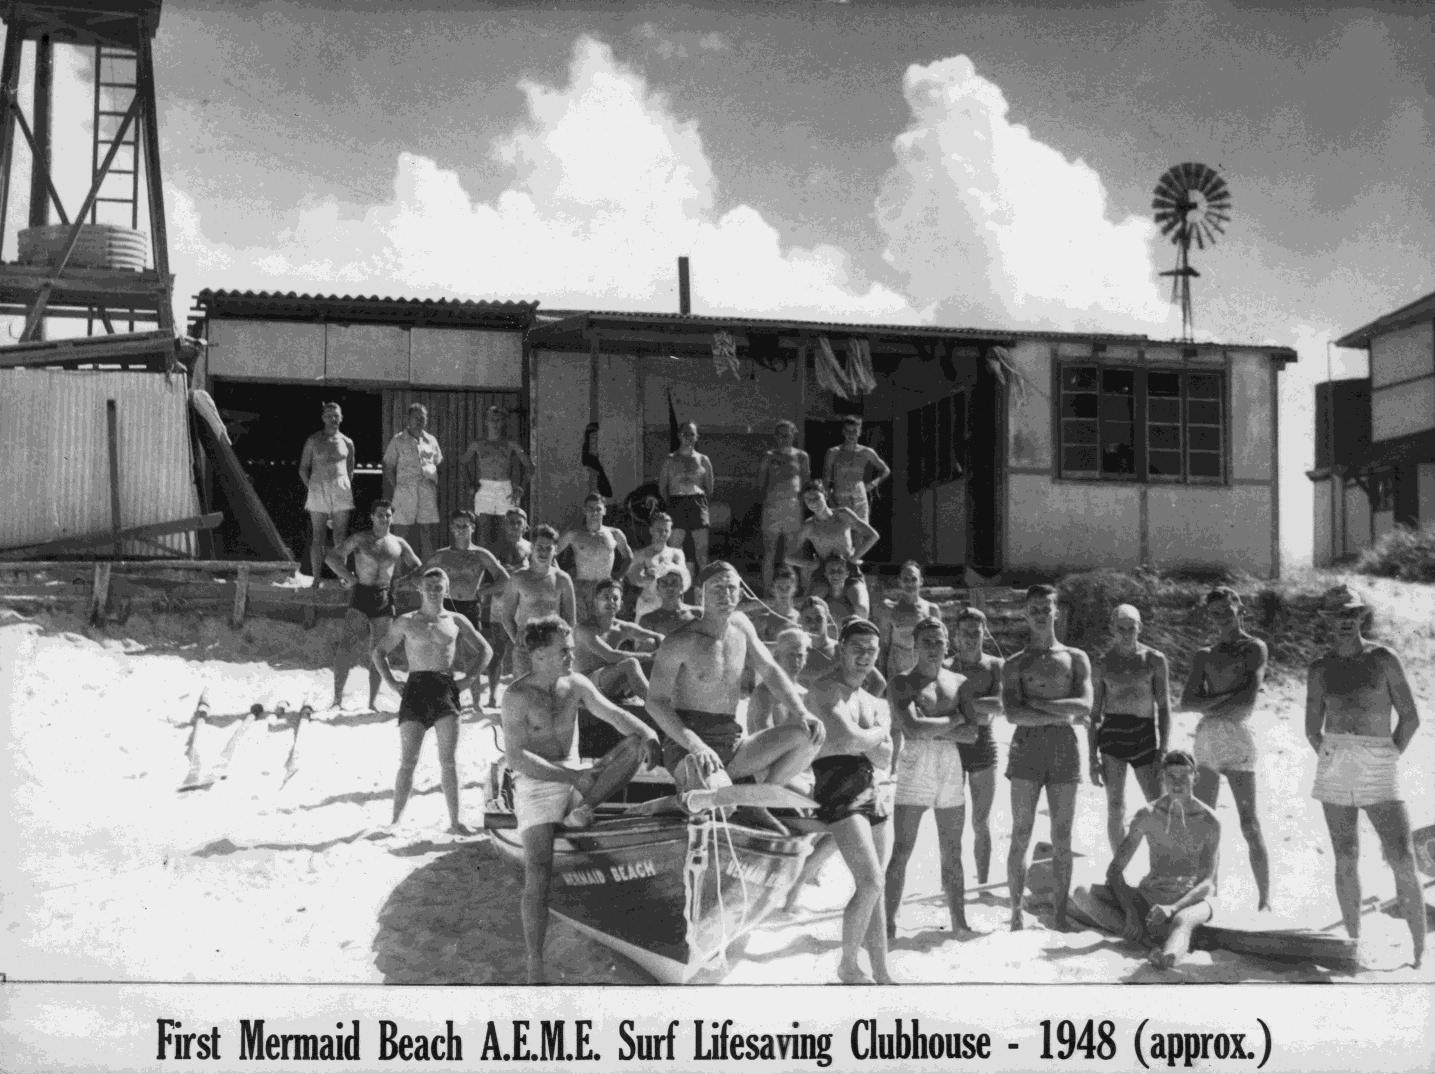 Mermaid Beach AEME SLSC